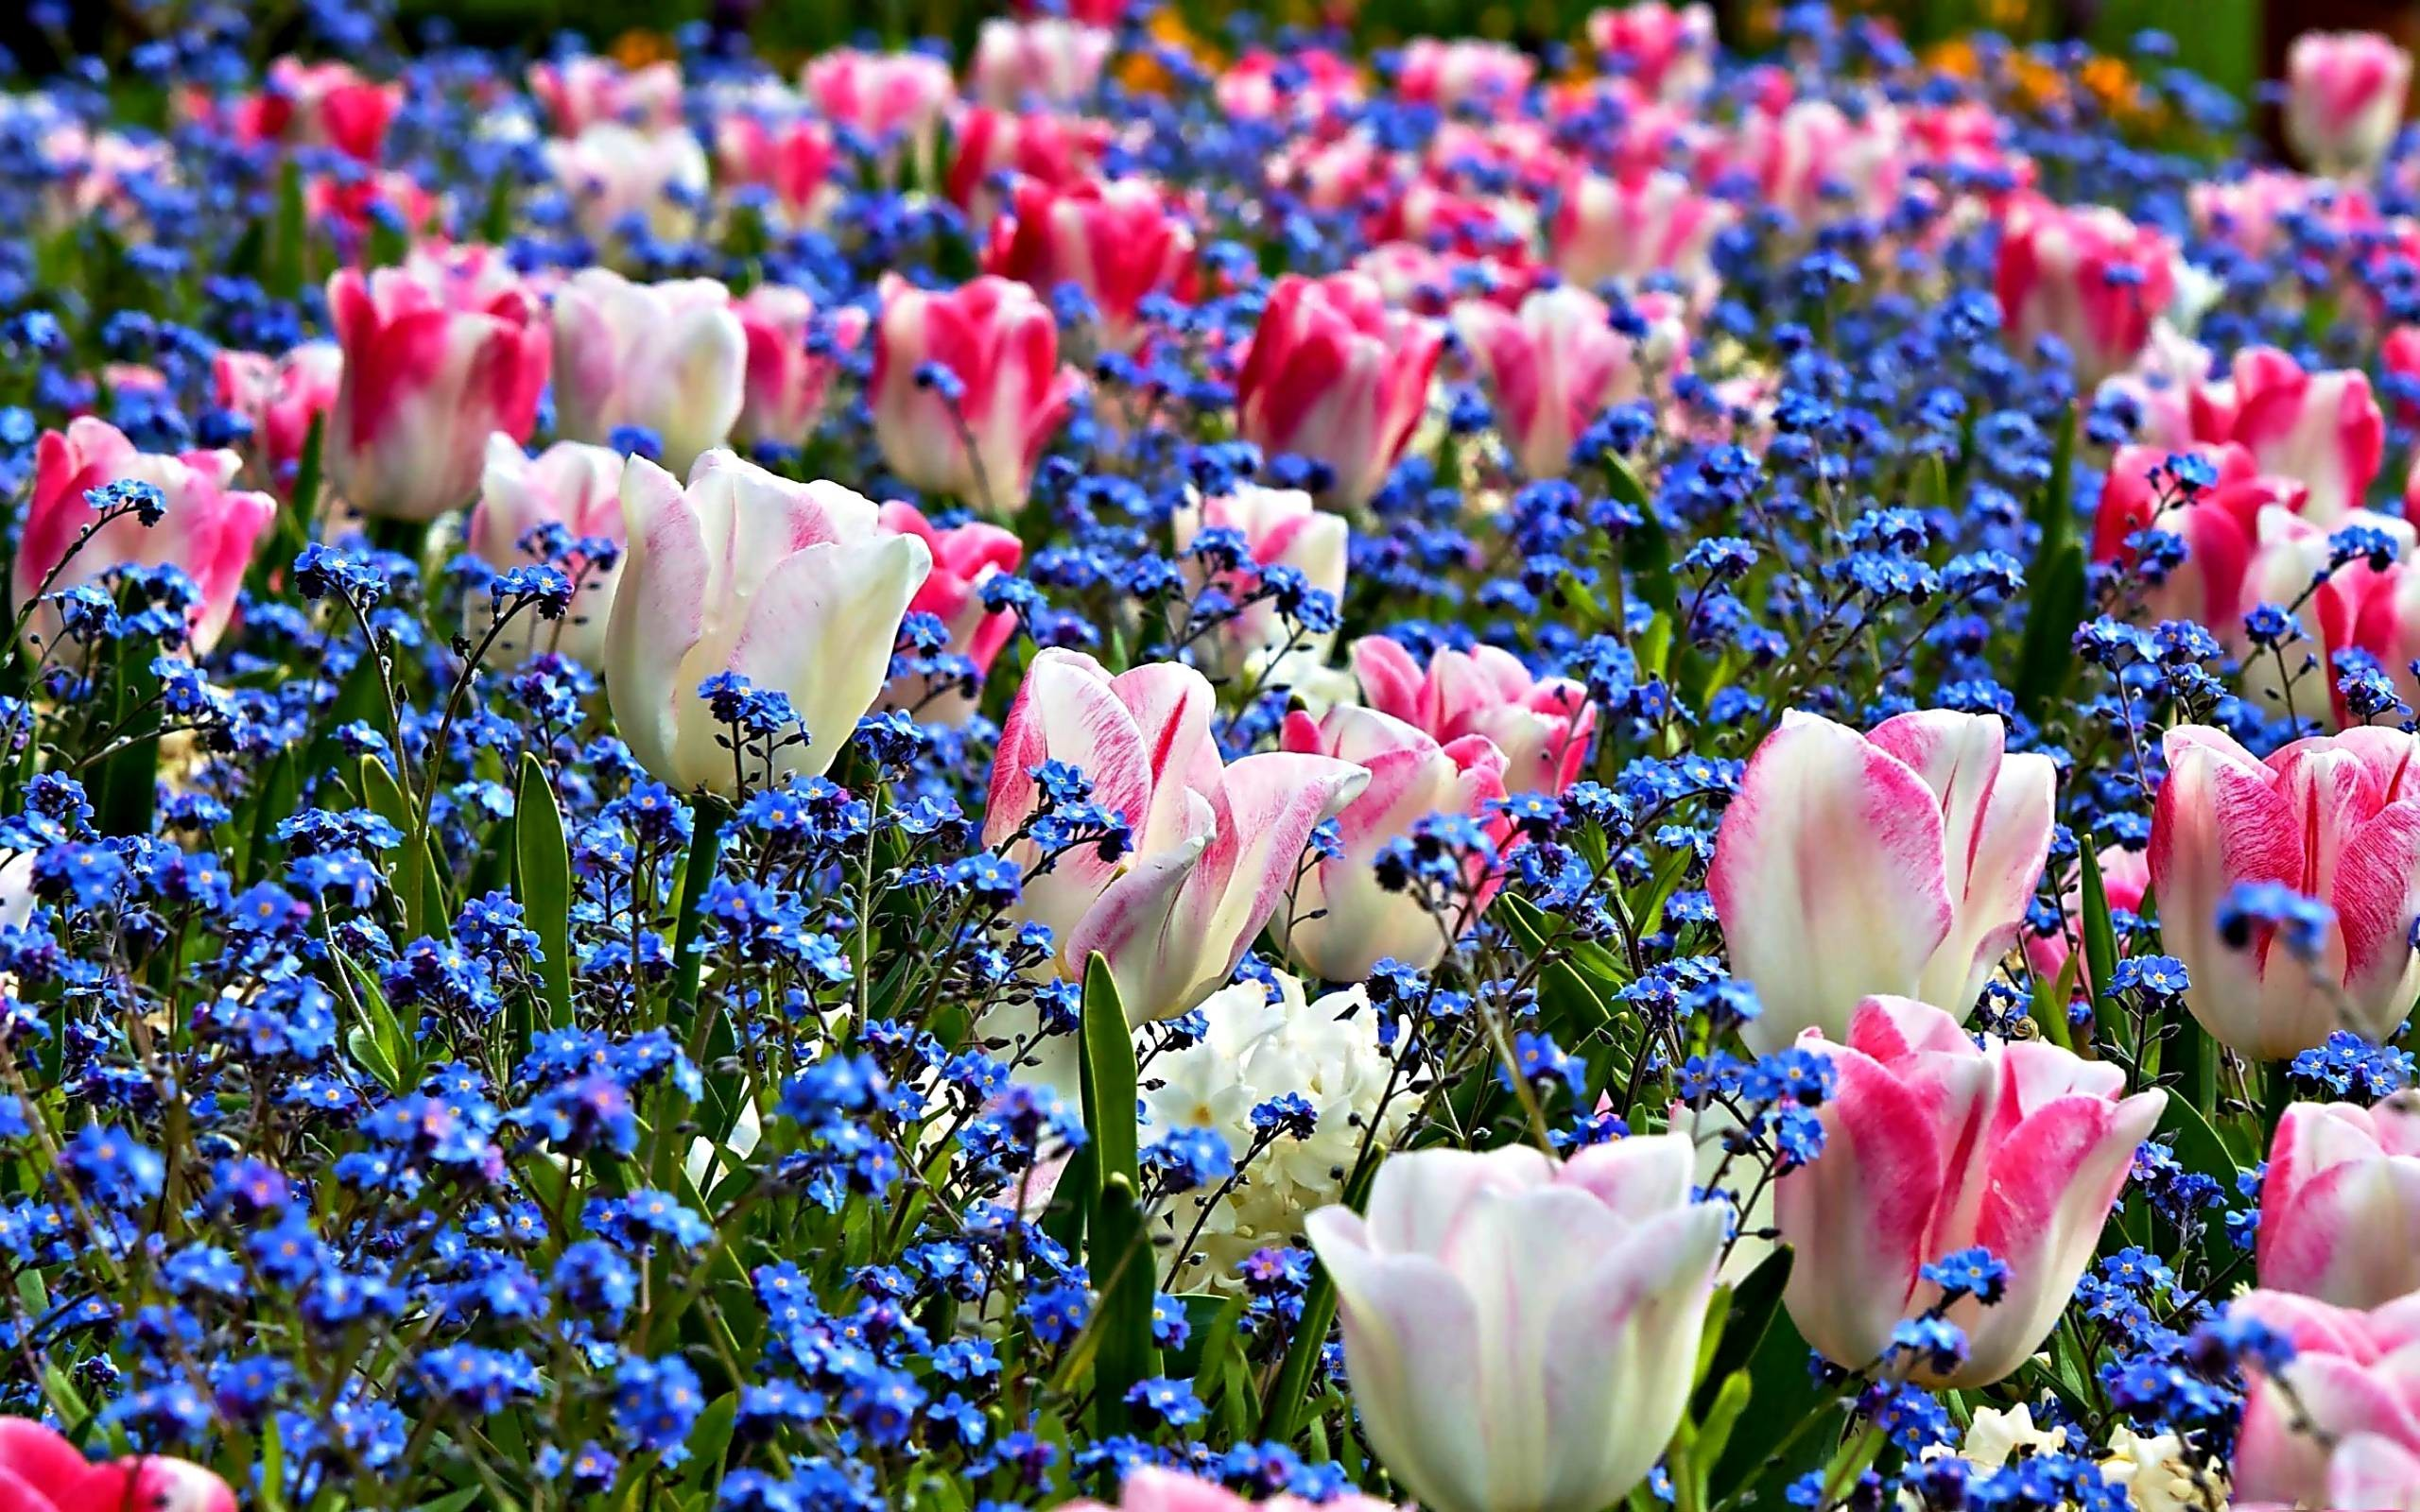 2560x1600 spring flowers wallpaper images - Wallpapers